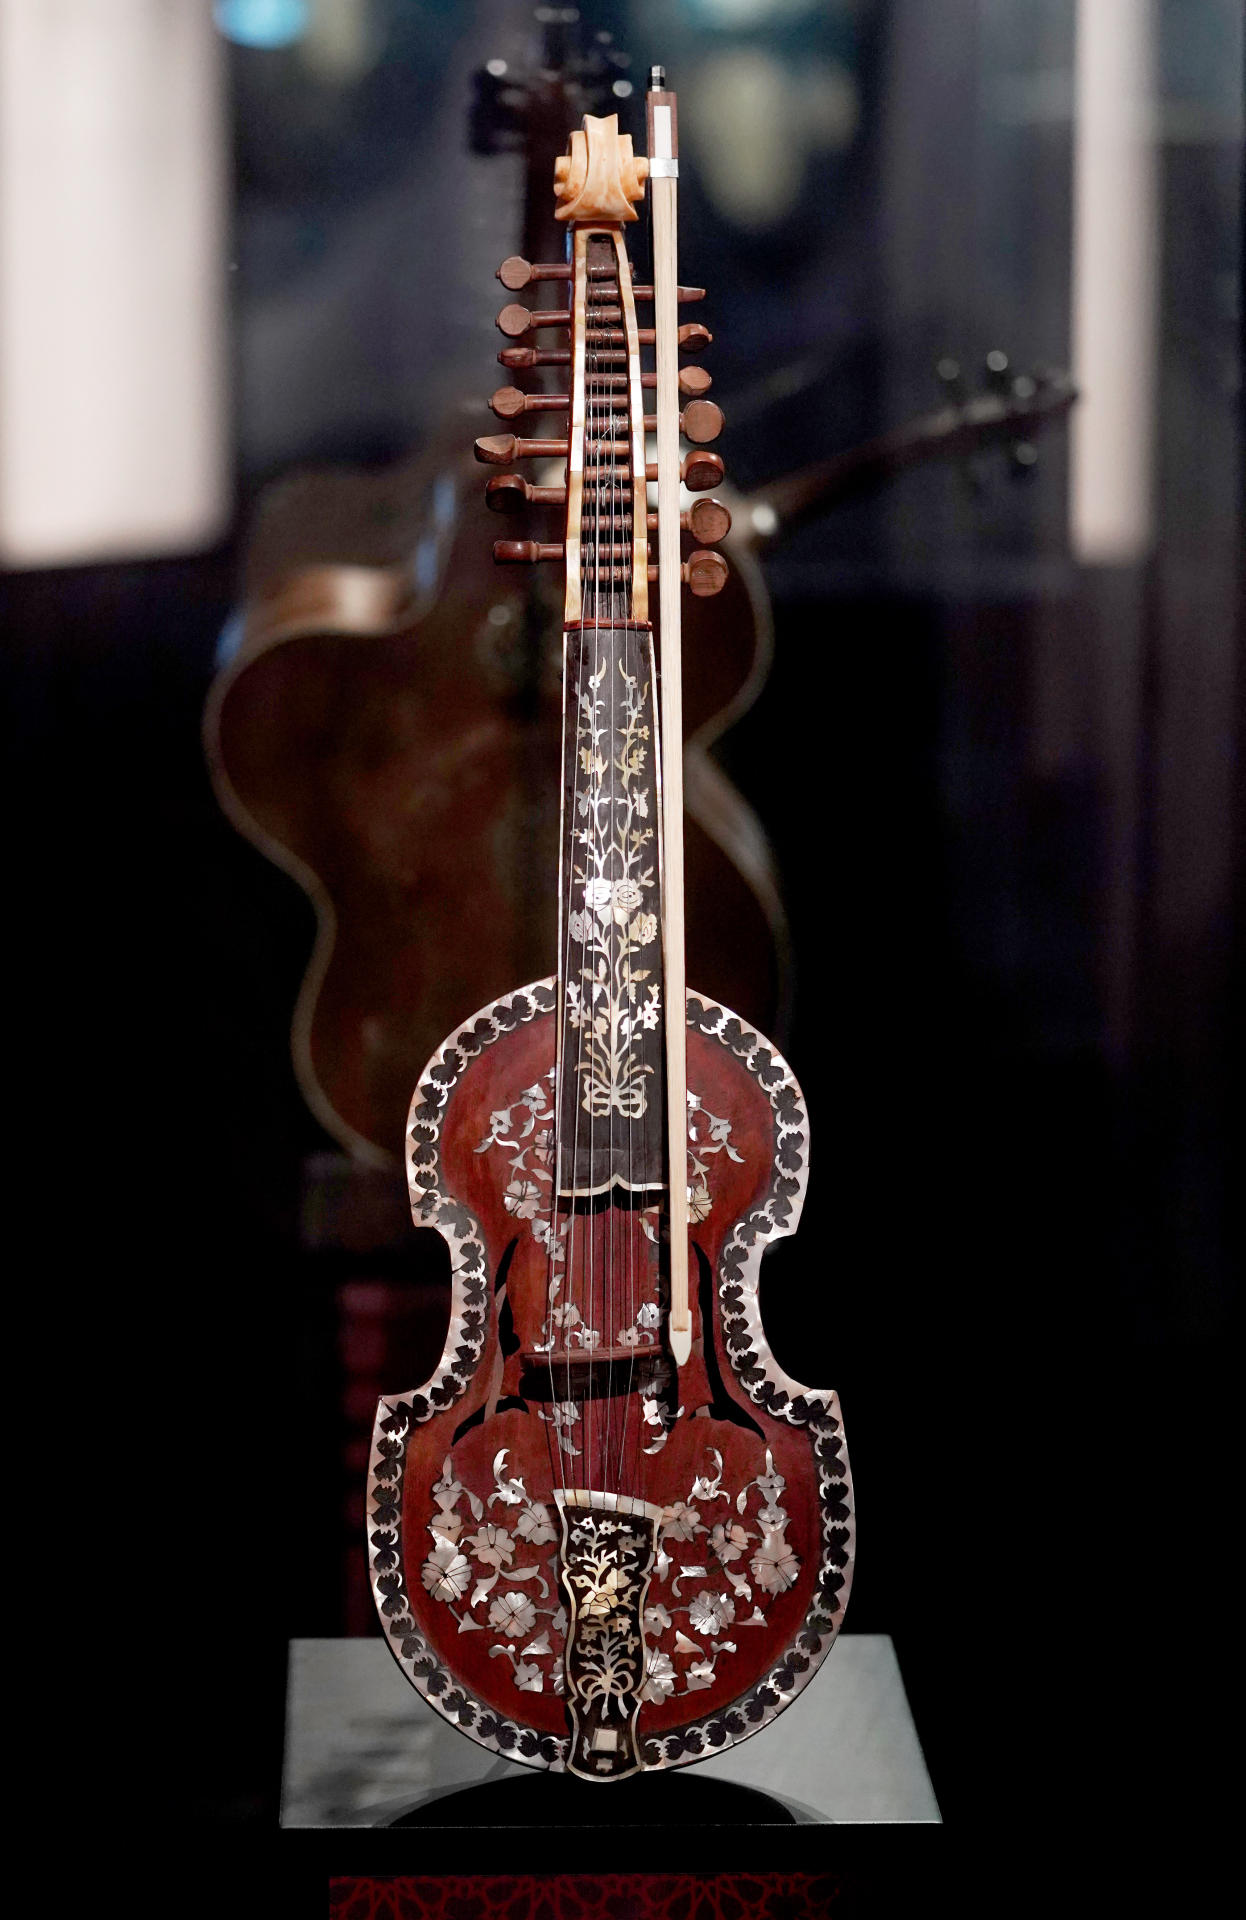 Exhibition of rare musical instruments opens at Heydar Aliyev Center (PHOTO/VIDEO)